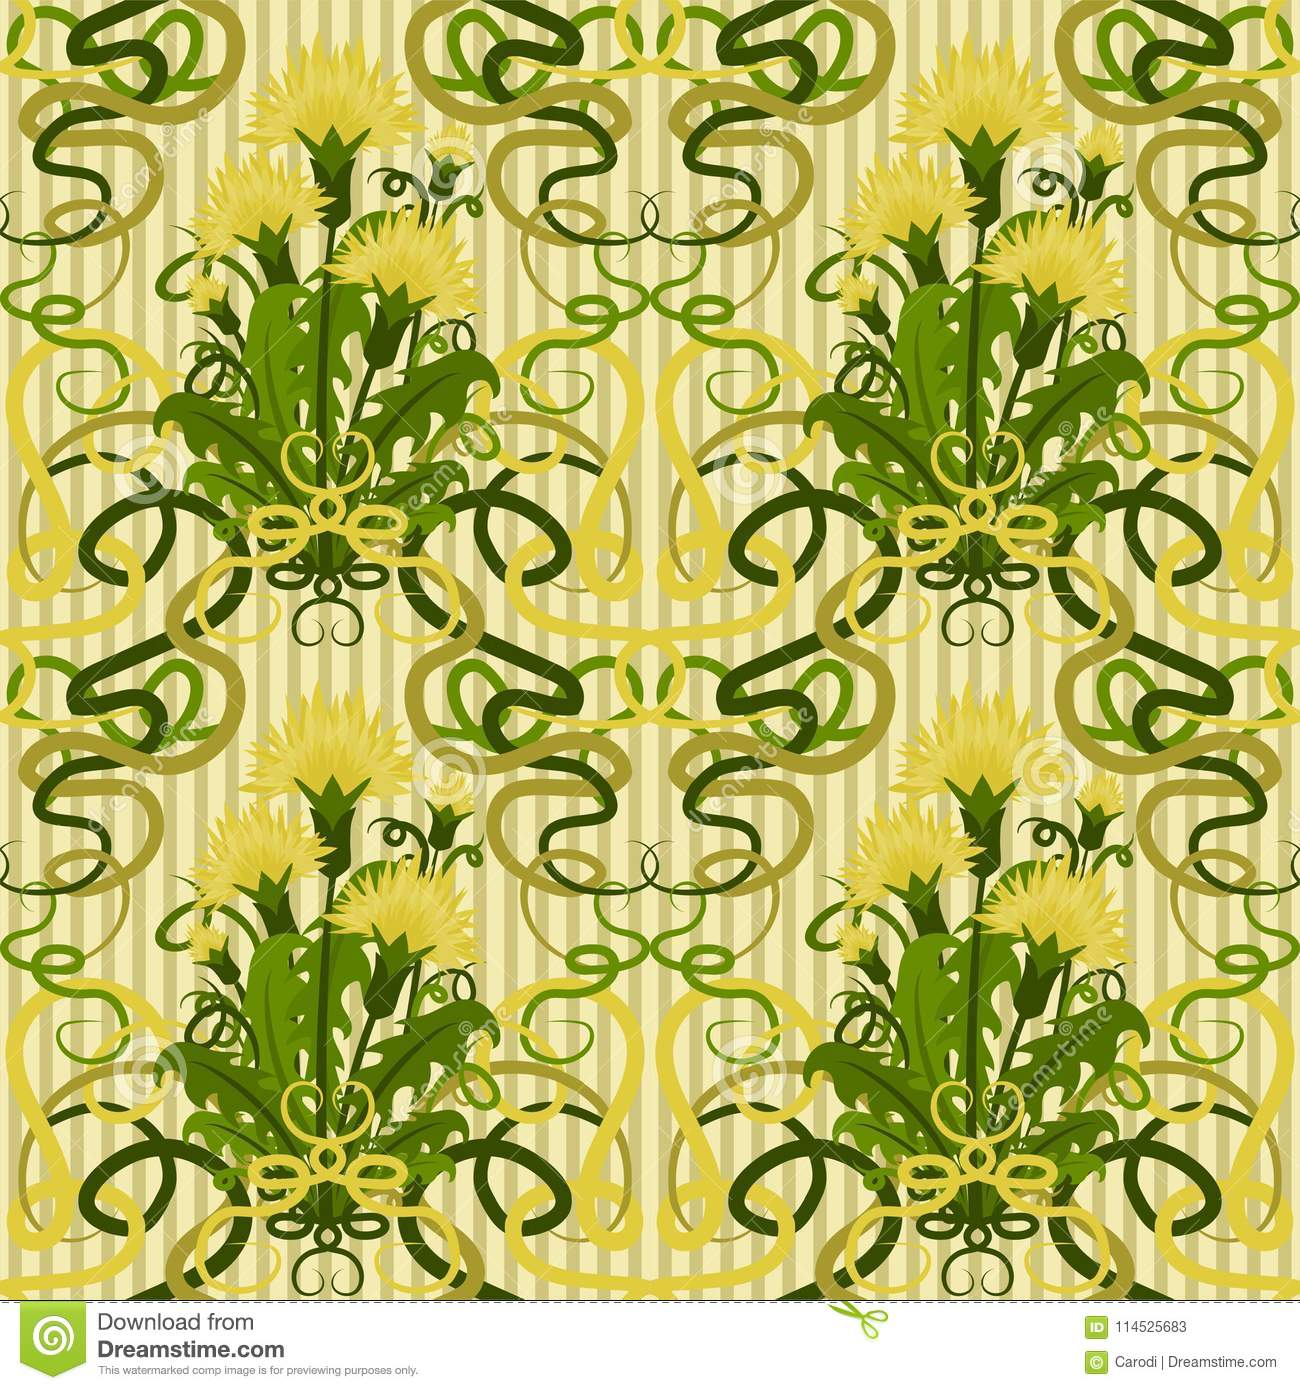 Seamless Wallpaper With Dandelions In Art Nouveau Style Stock Vector ...